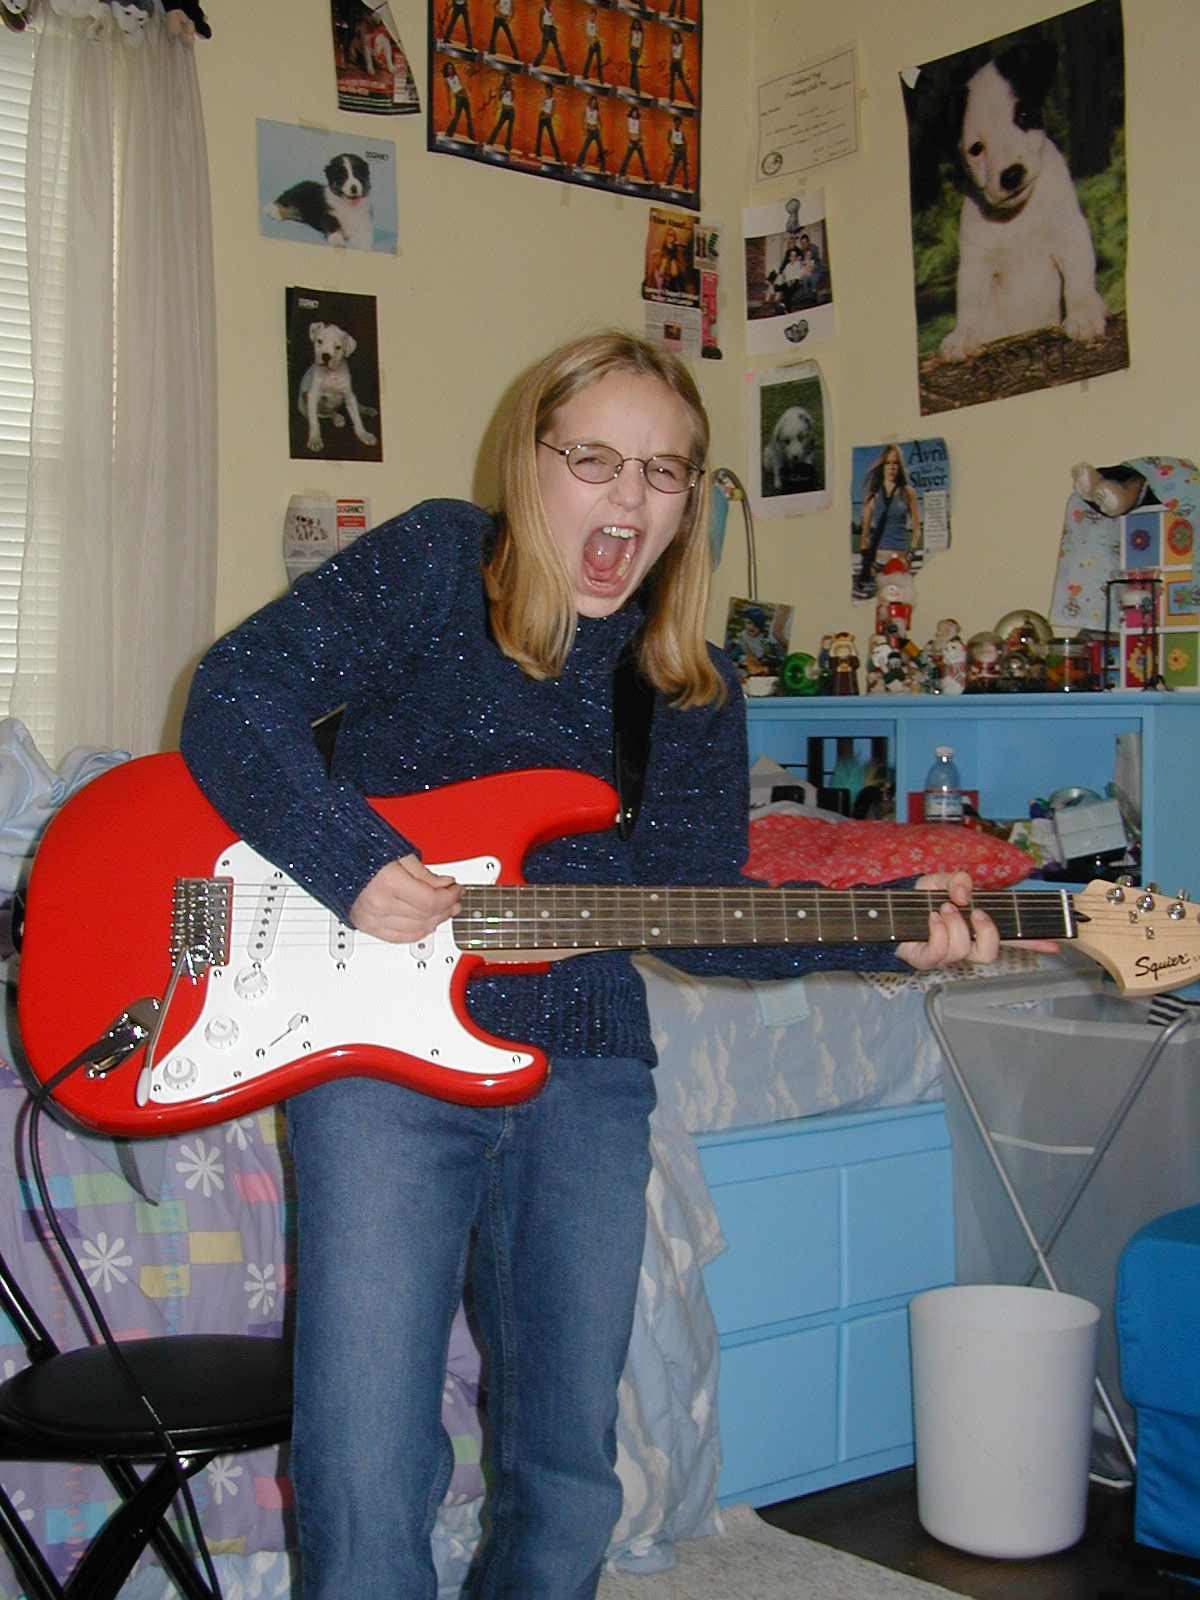 ...and shredding on her brand new electric guitar, Christmas Day 2002.